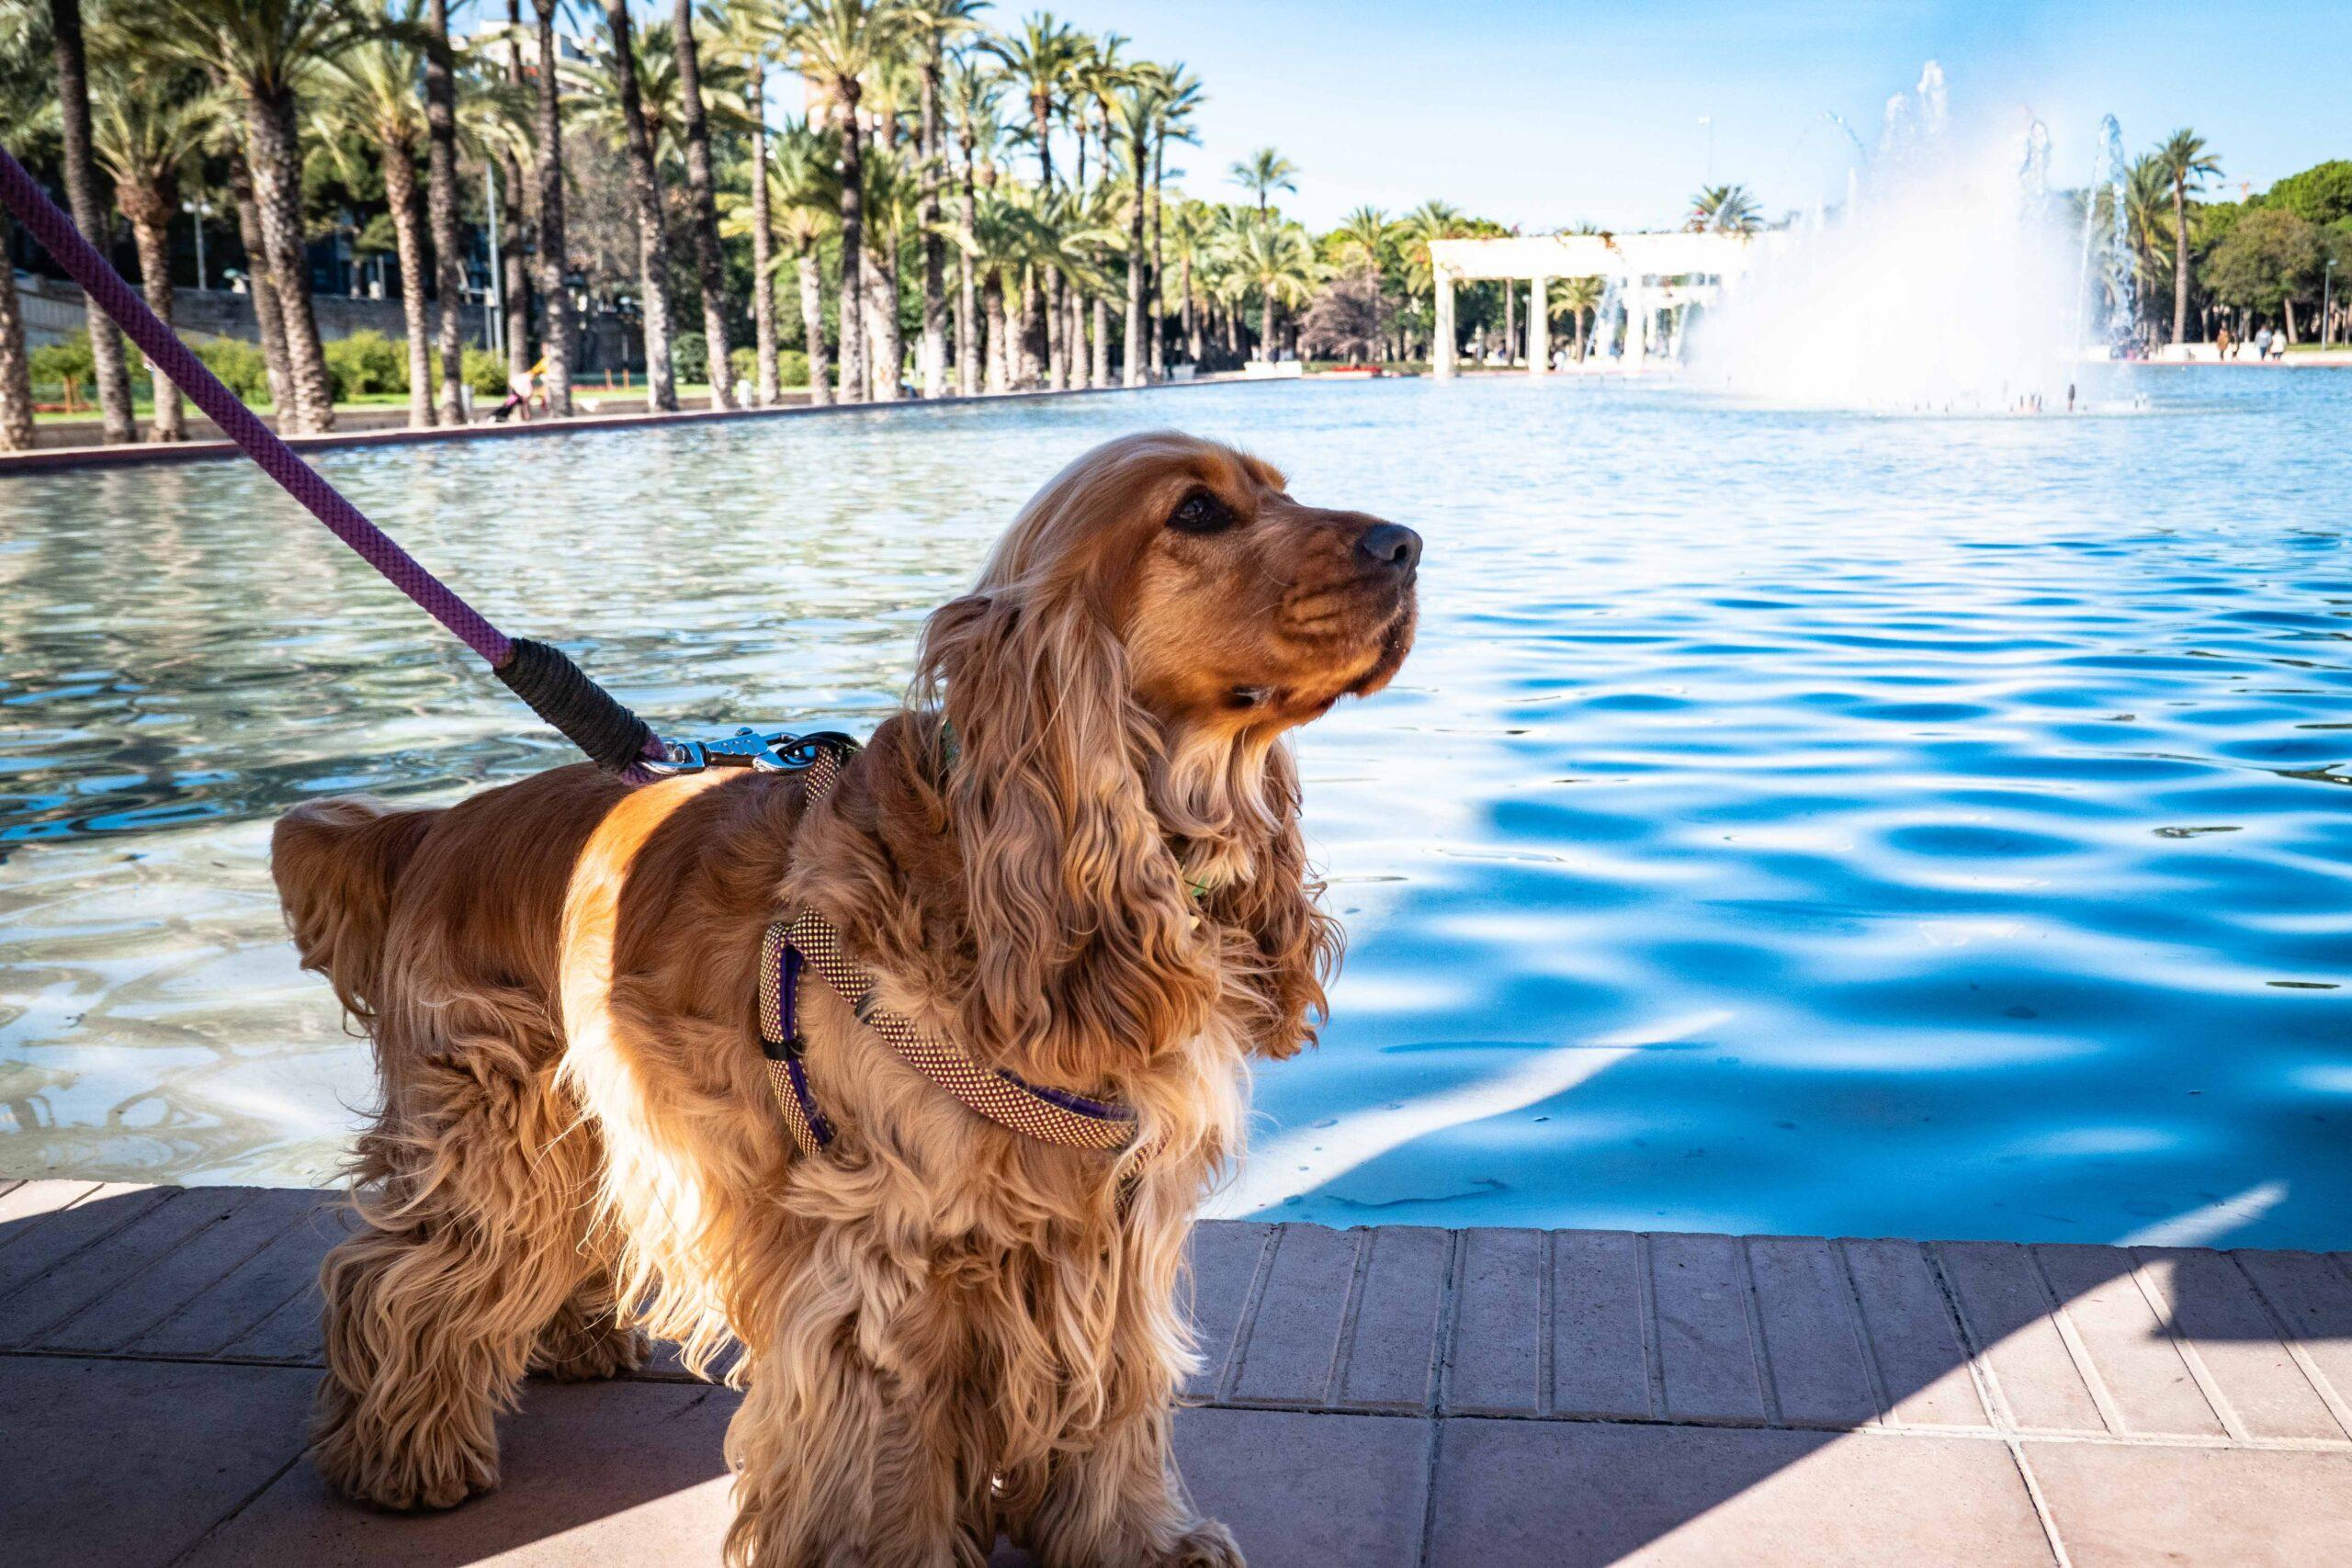 How to travel with your dog?